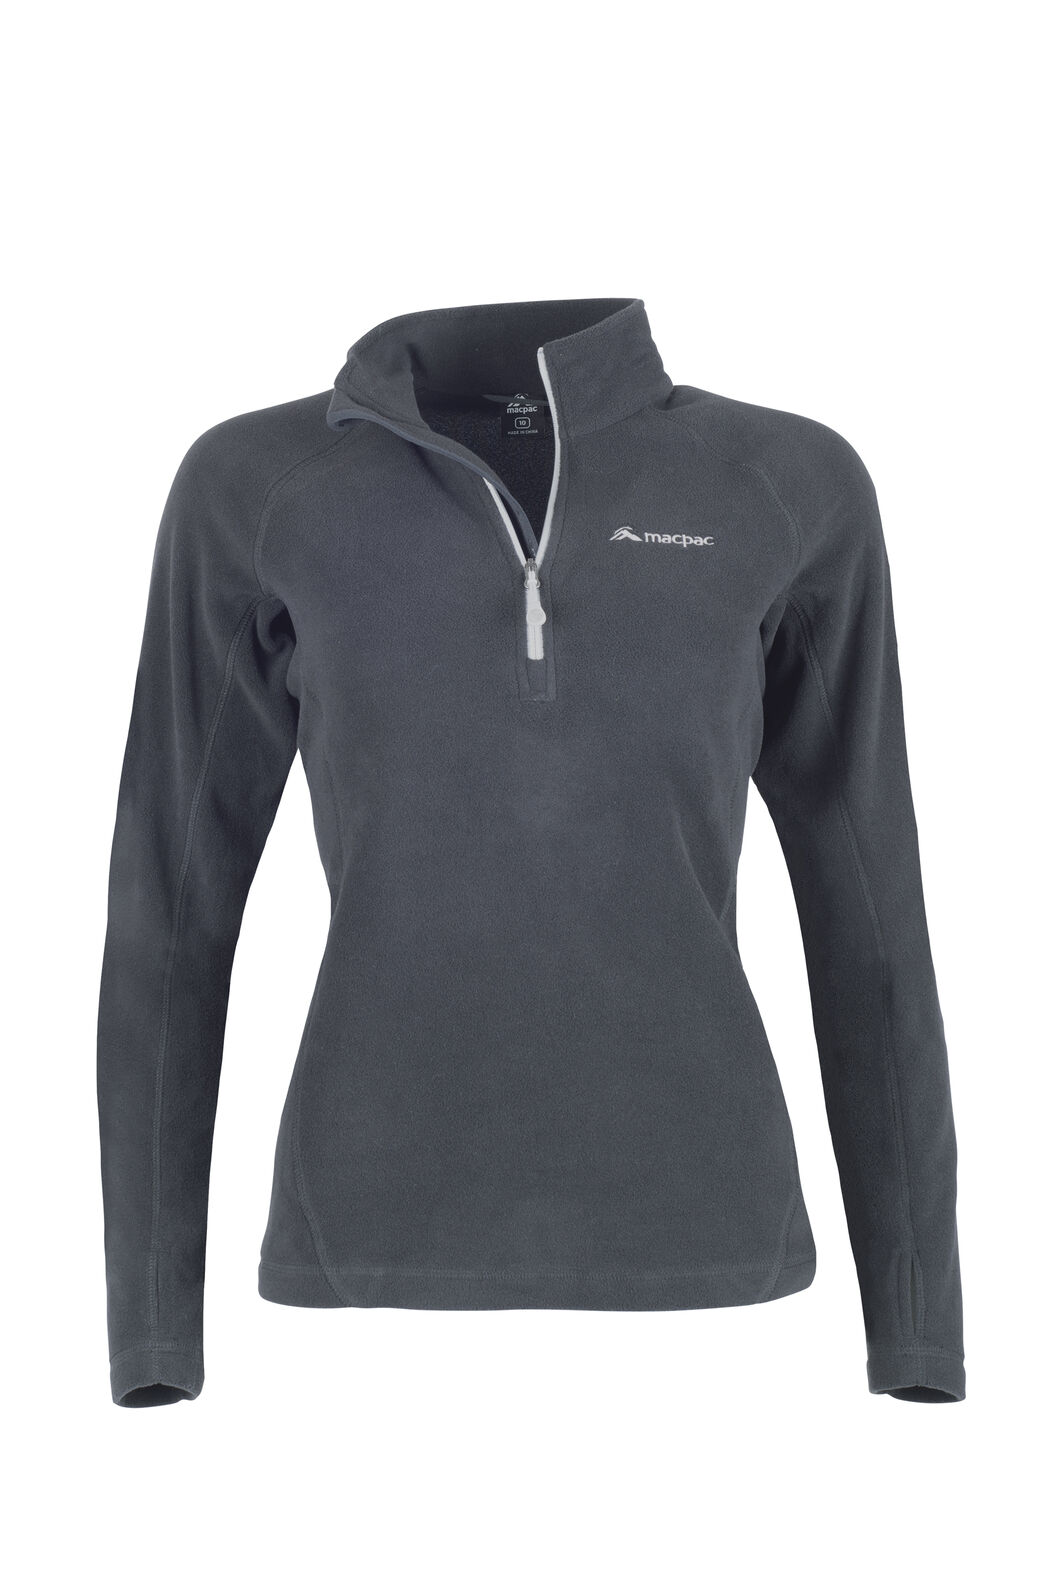 Macpac Tui Fleece Pullover - Women's, Black, hi-res